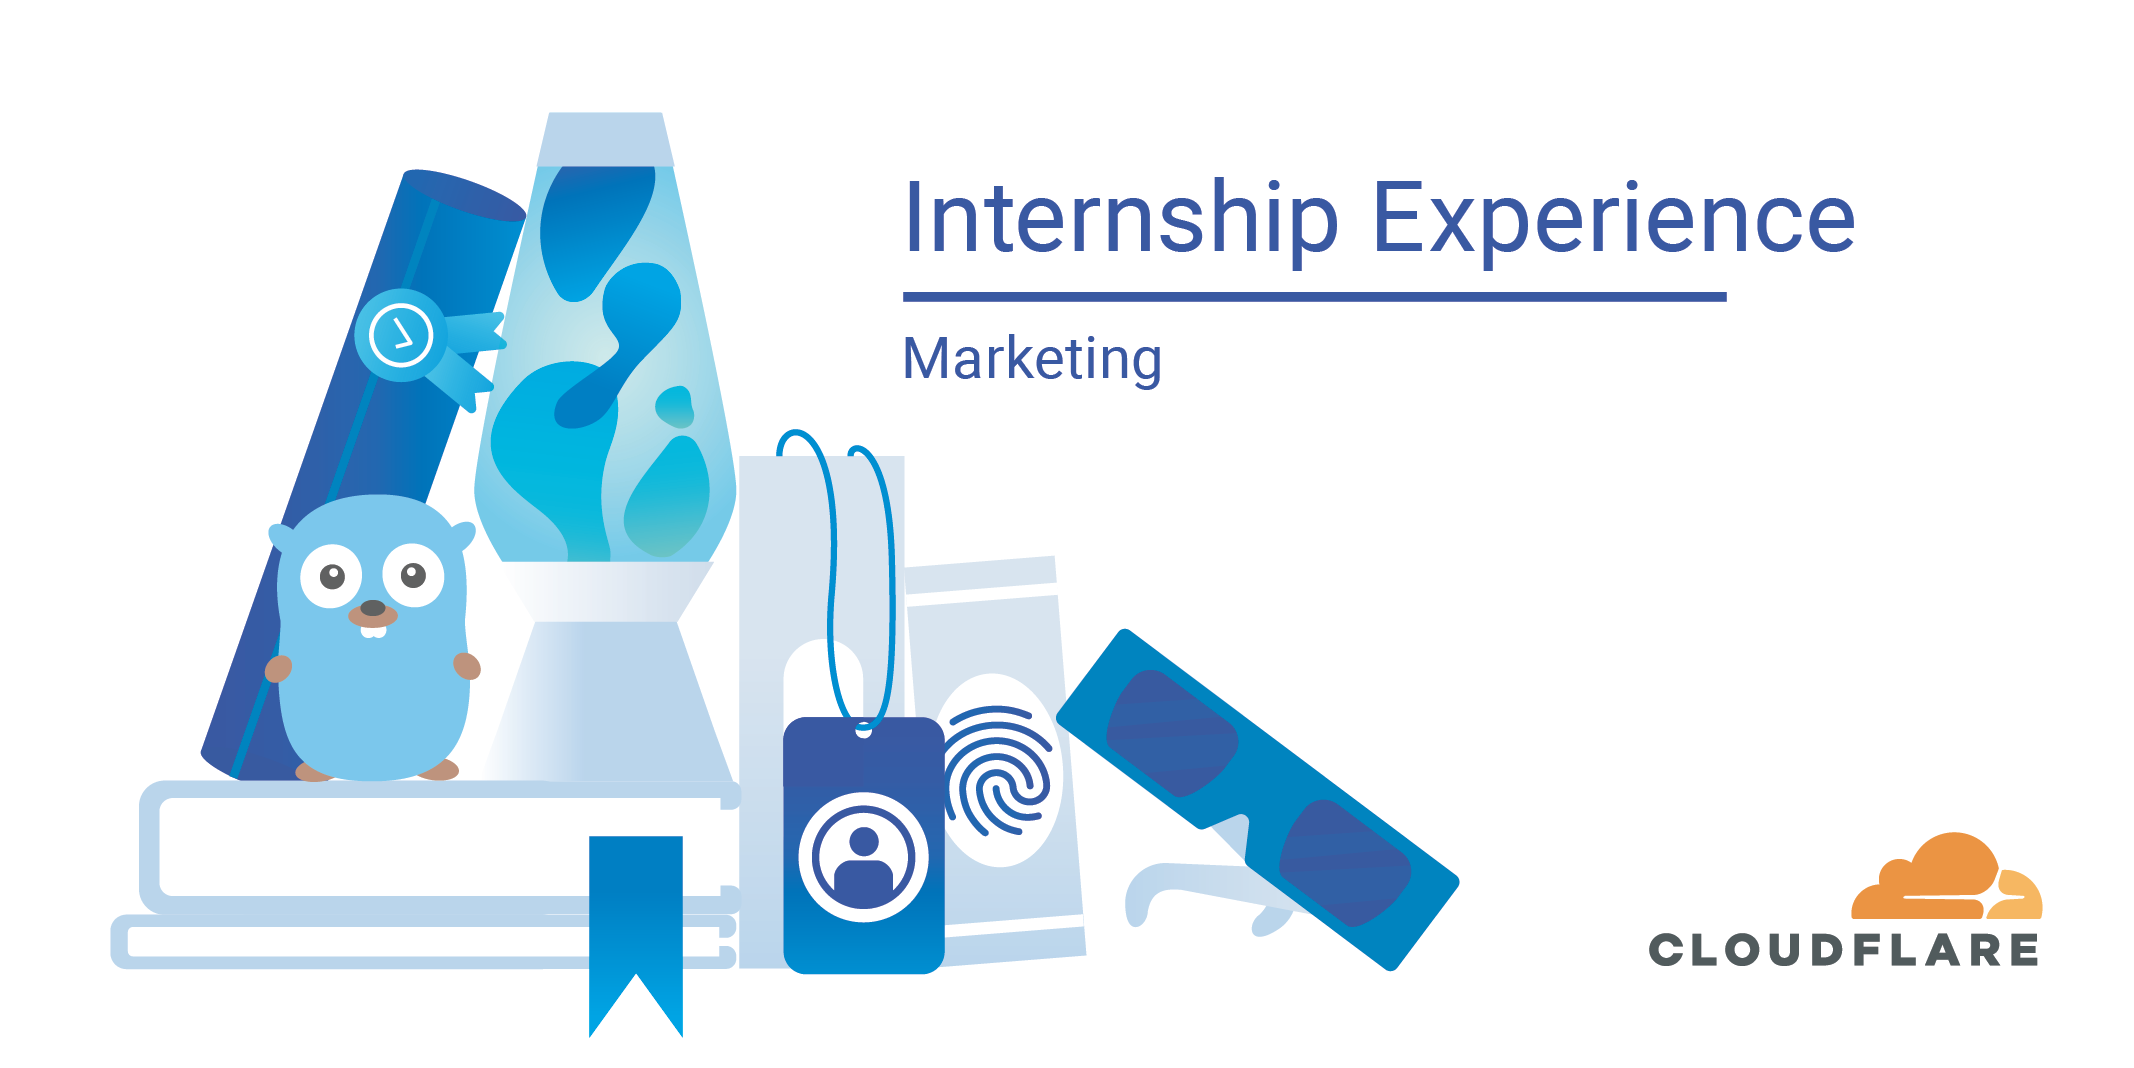 Virtual Interning Offers Unique Challenges and Opportunities